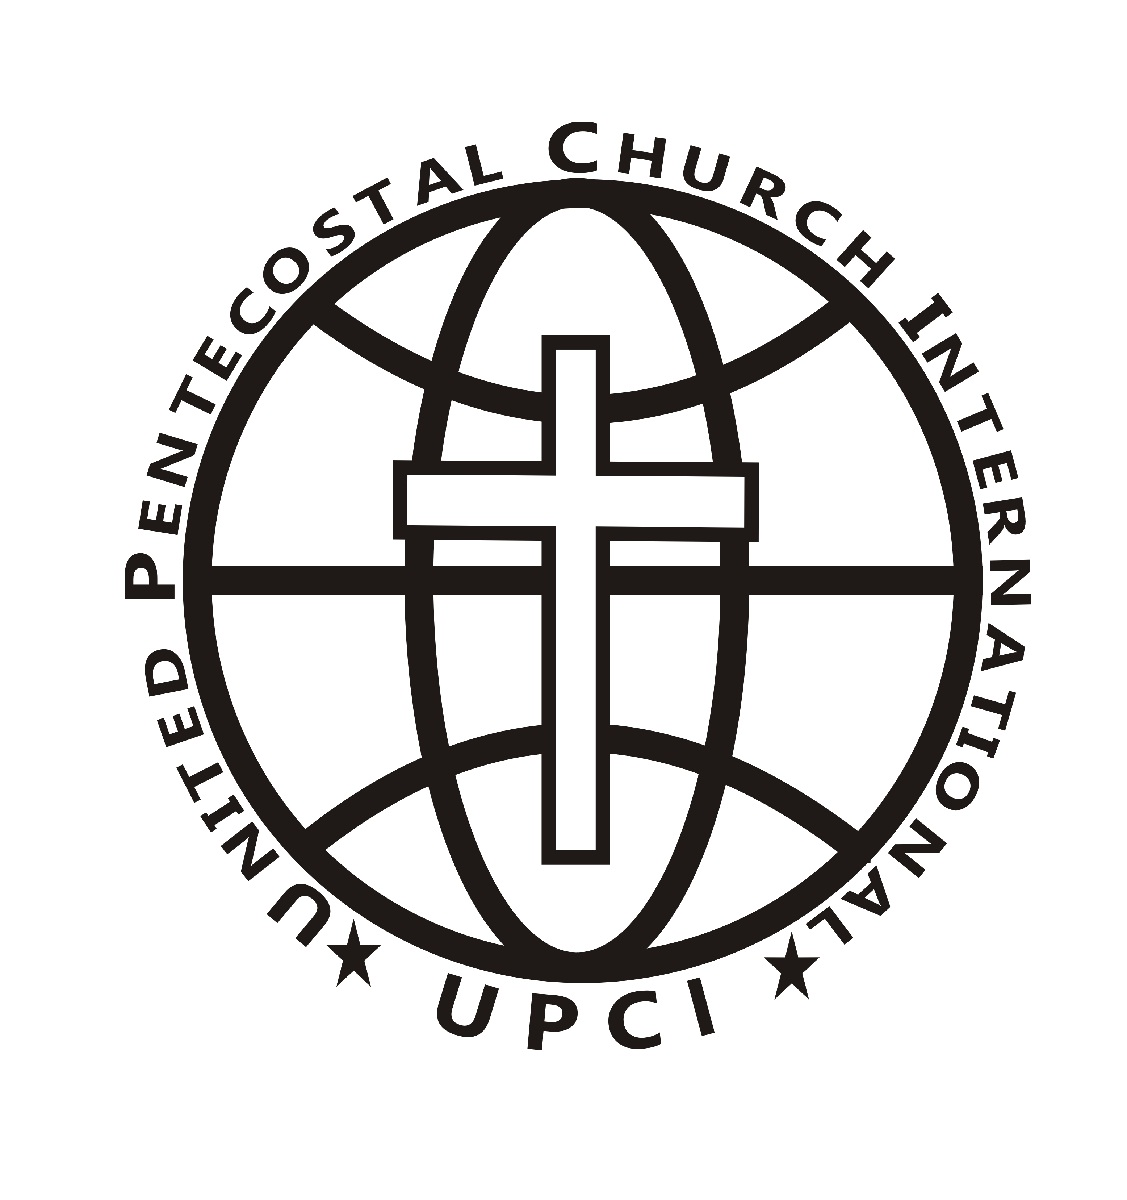 conservative serious church logo design for united